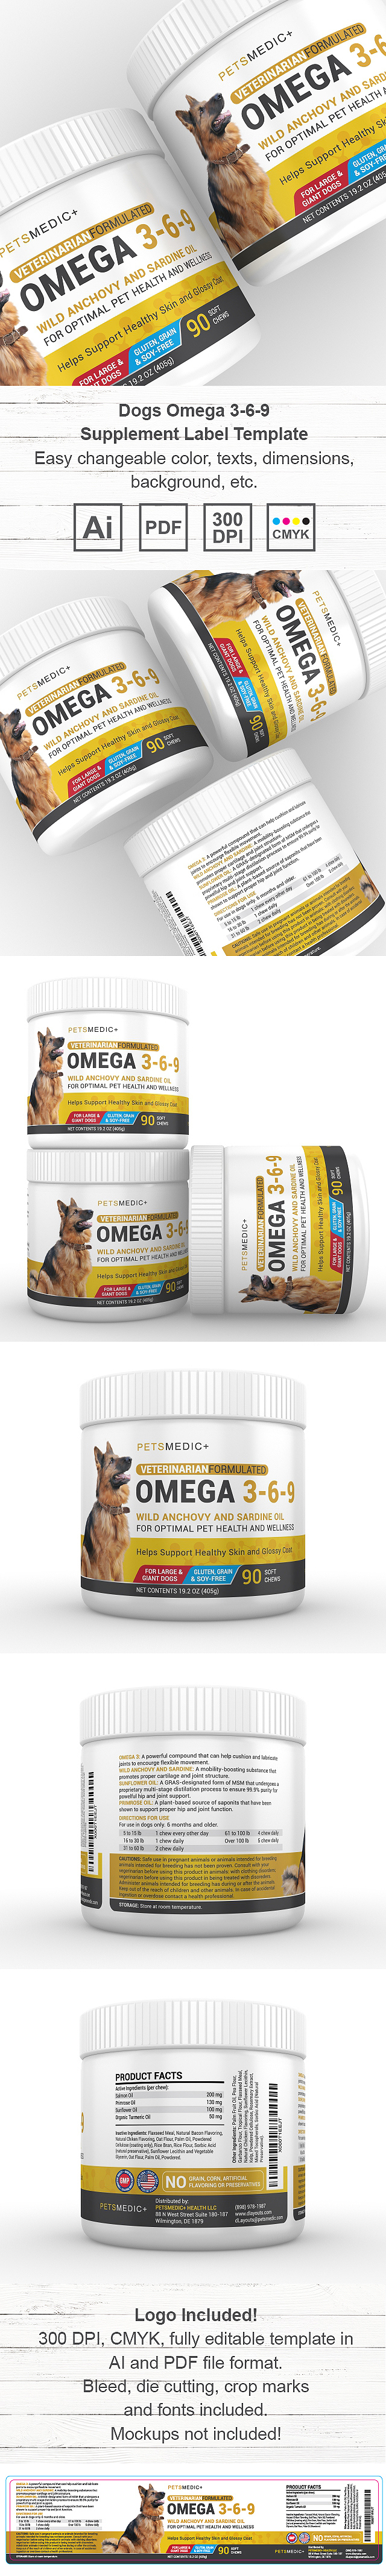 Pet Omega 3-6-9 Supplement Label Template